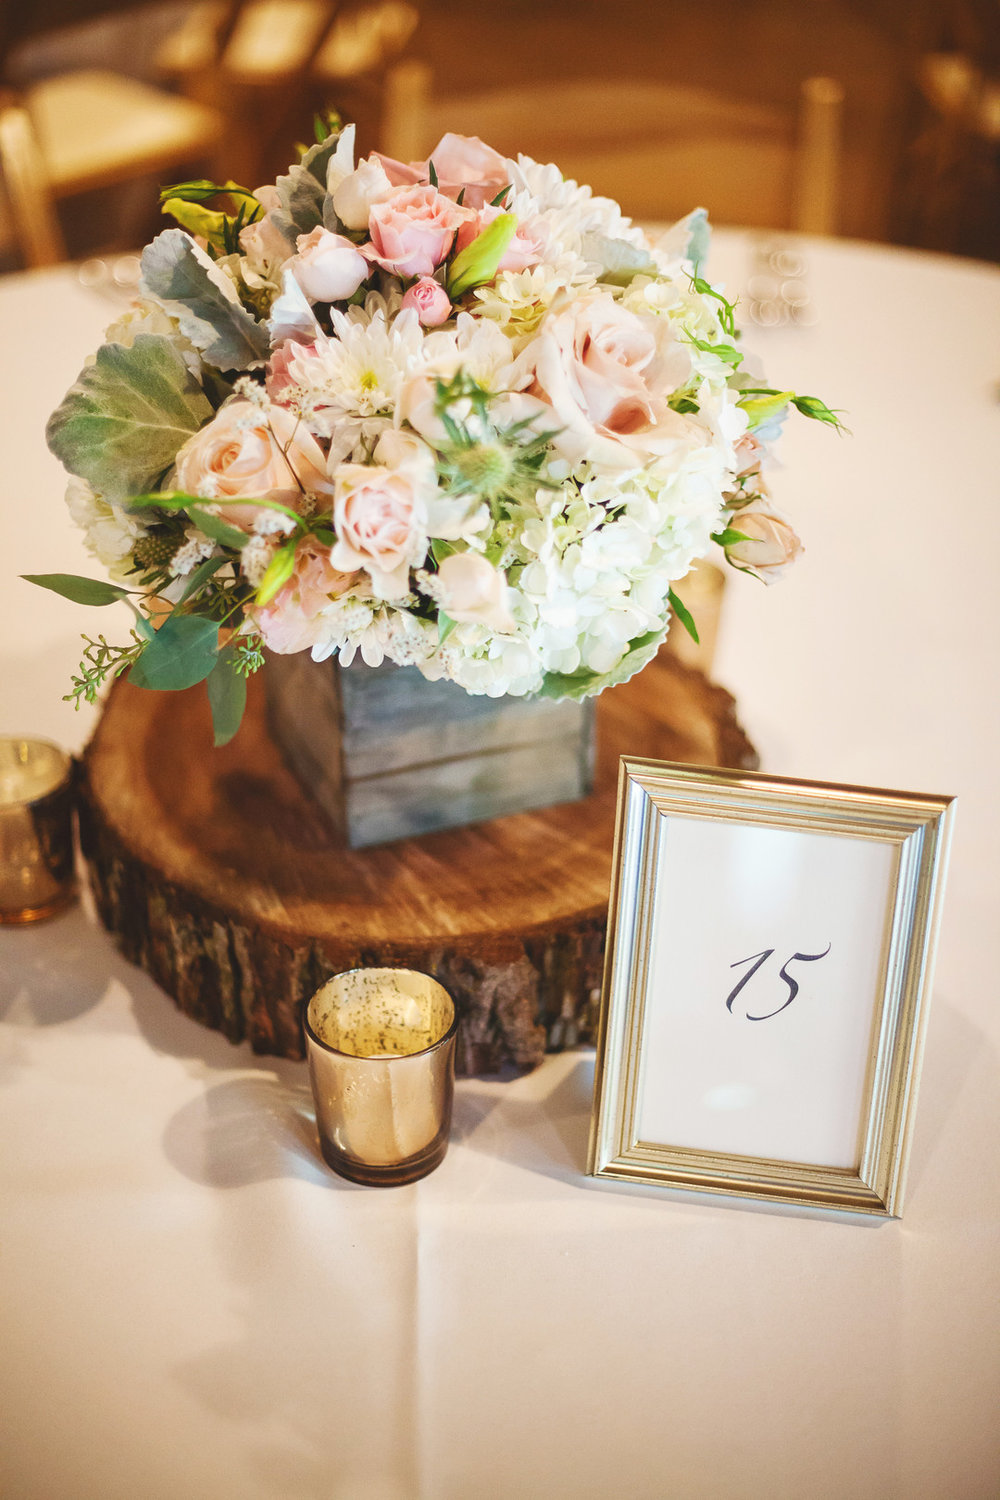 Romantic and whimsical garden wedding in Sycamore, IL captured by Rachel Schirano Photography. See more wedding ideas at CHItheeWED.com!